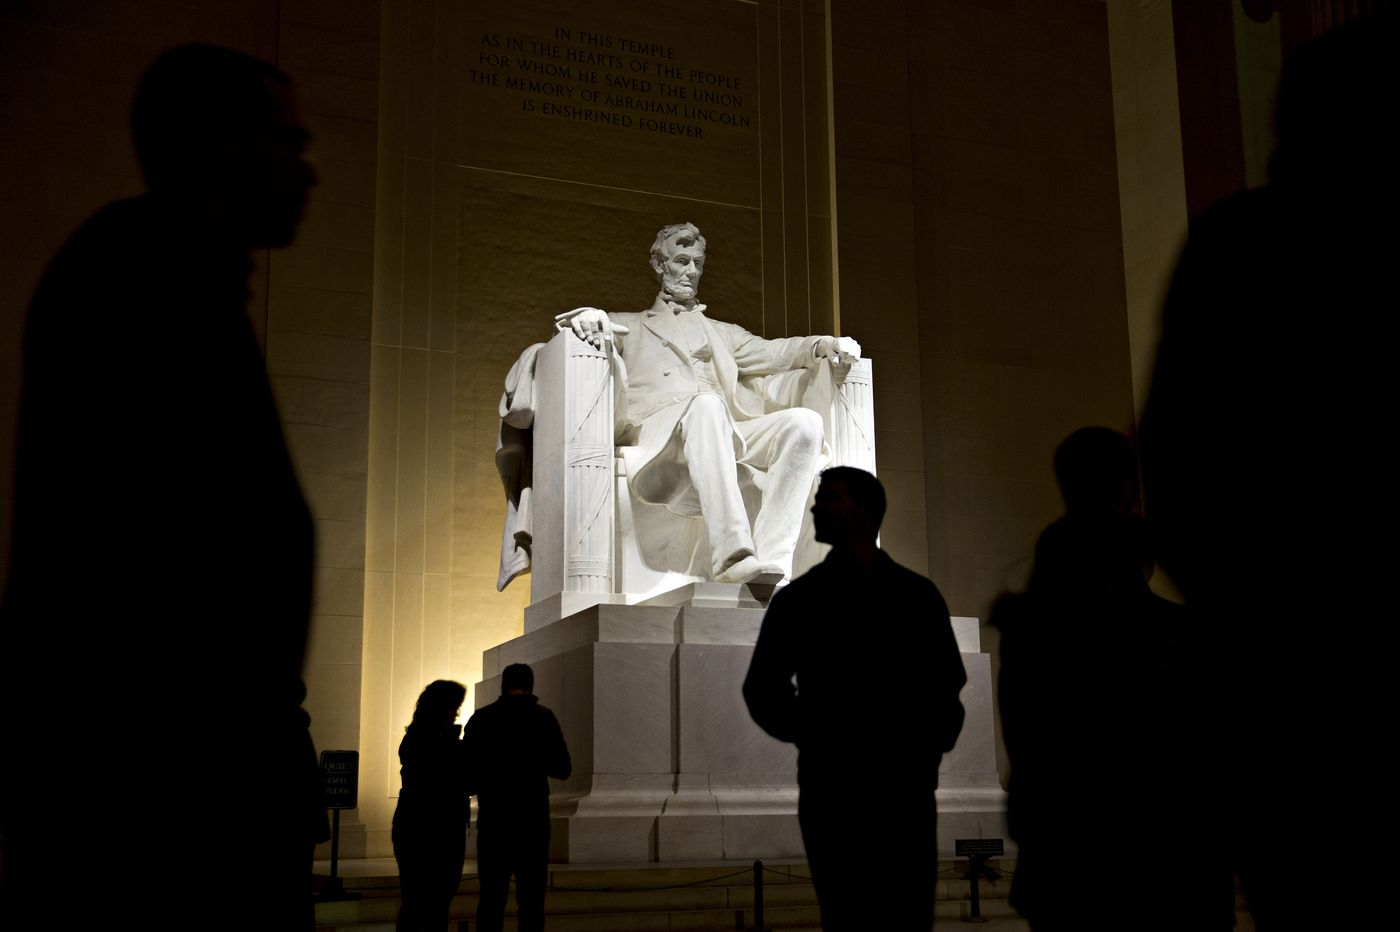 A stain on the Lincoln Memorial | Opinion